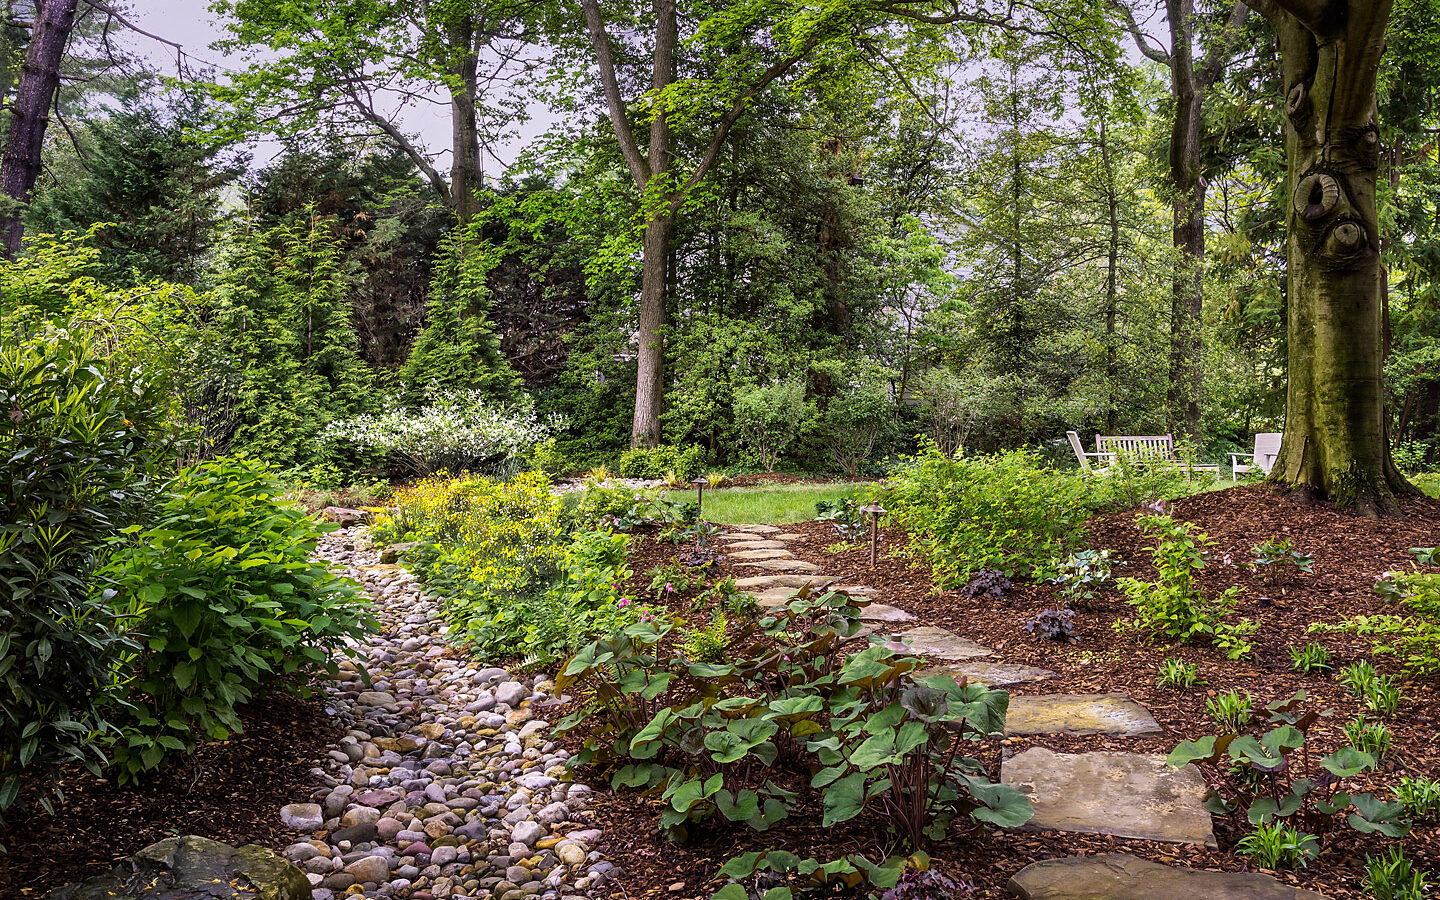 Use of native plants and stream bed